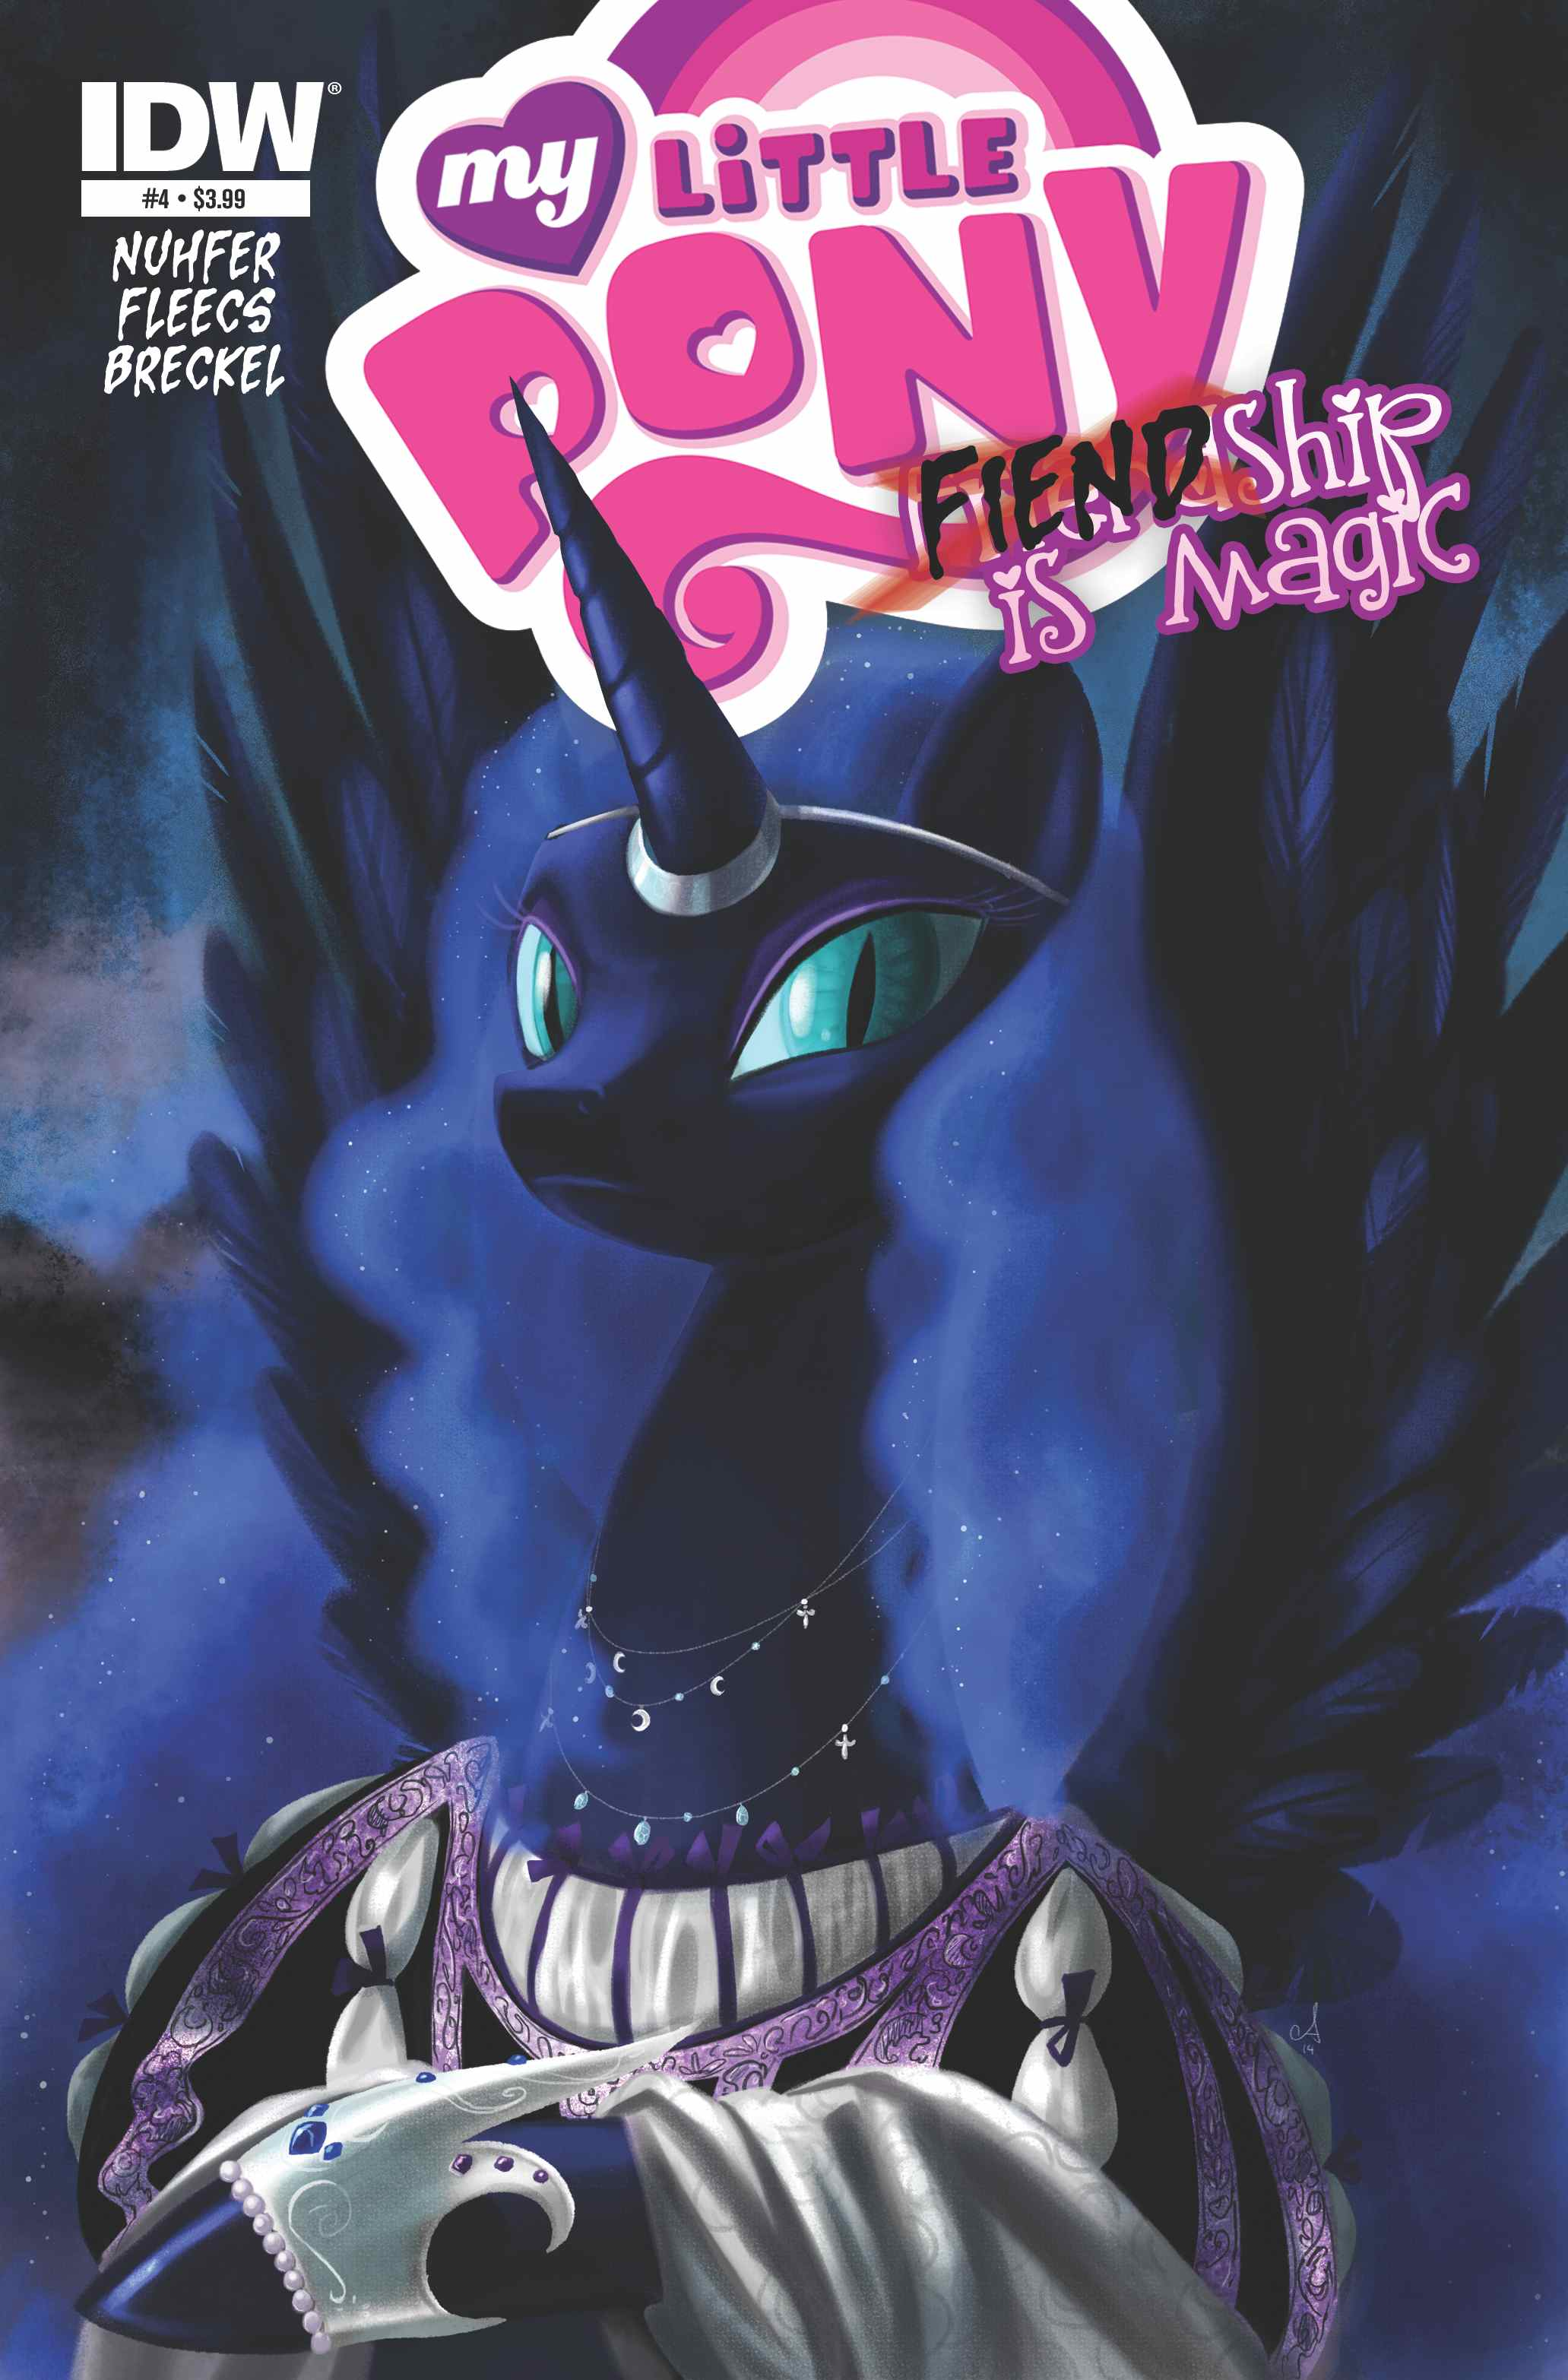 FIENDship is Magic Issue 4